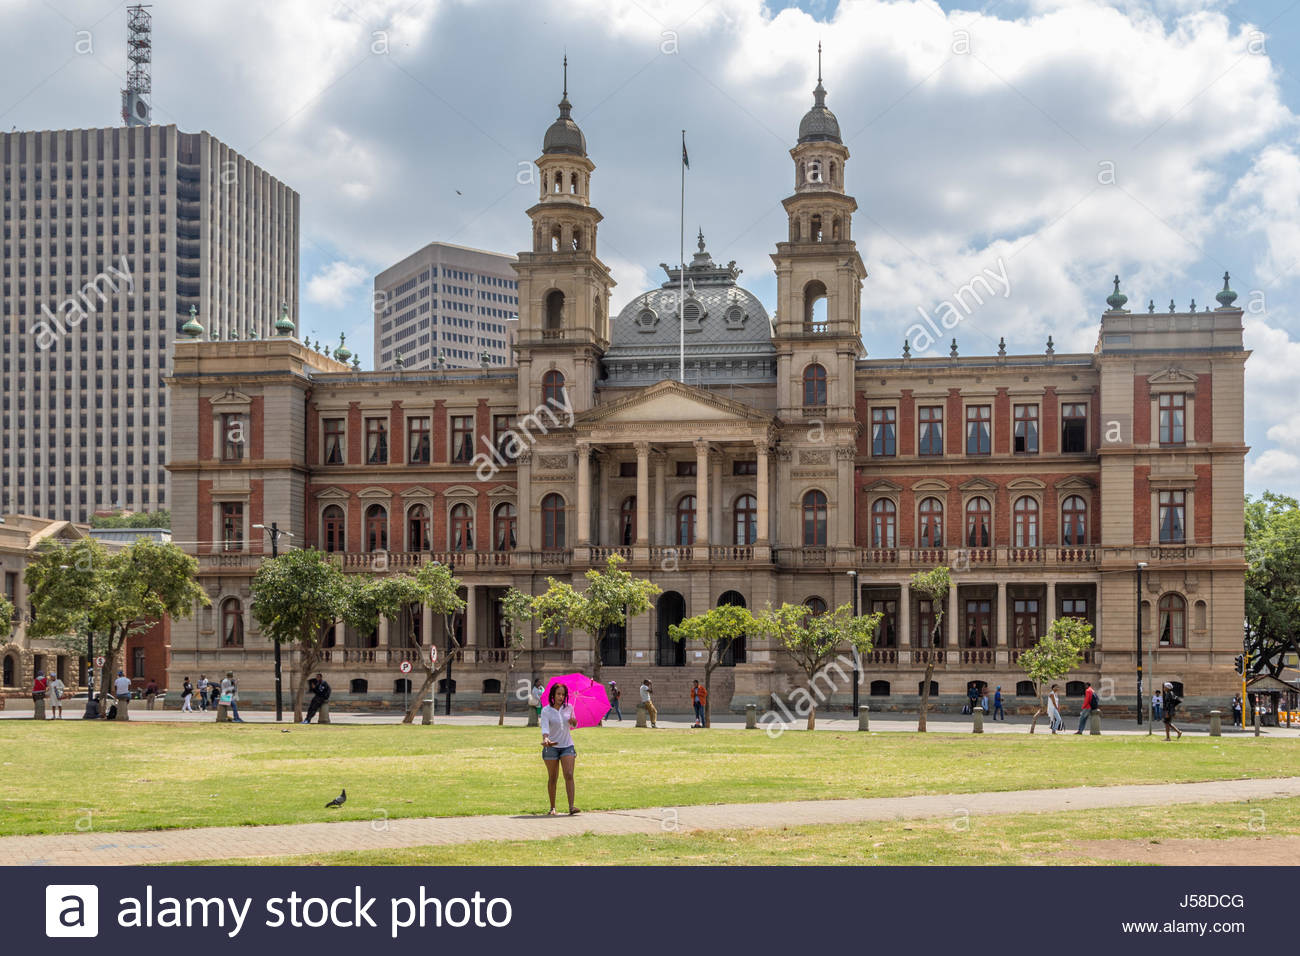 A woman carrying a bright purple sunshade walks across the grass in front of the Palace of Justice, Church Square, - Stock Image